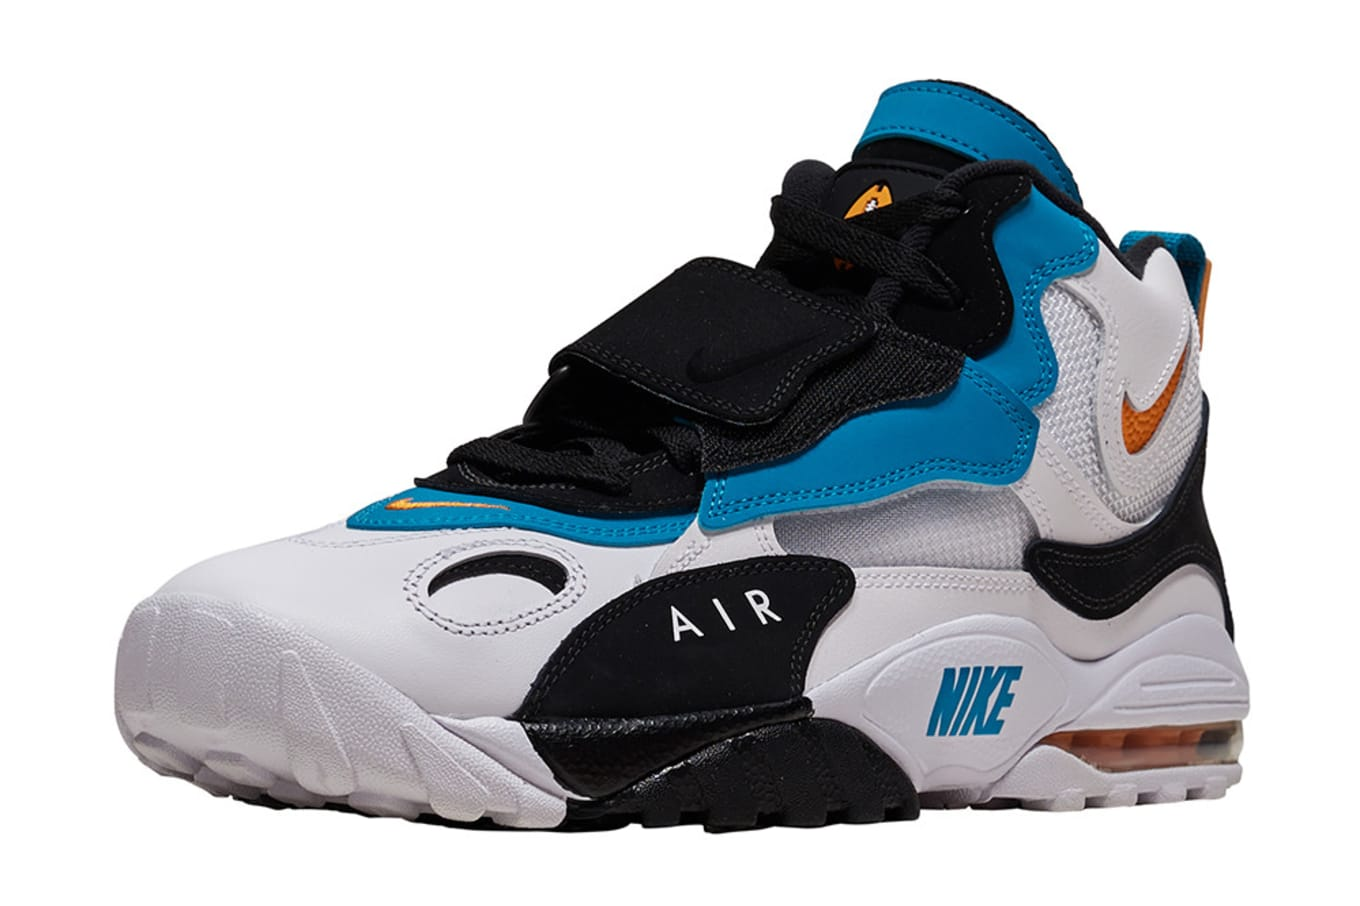 5ec8716ce2ed Nike Air Max Speed Turf  Dan Marino  525225-100 Available Now